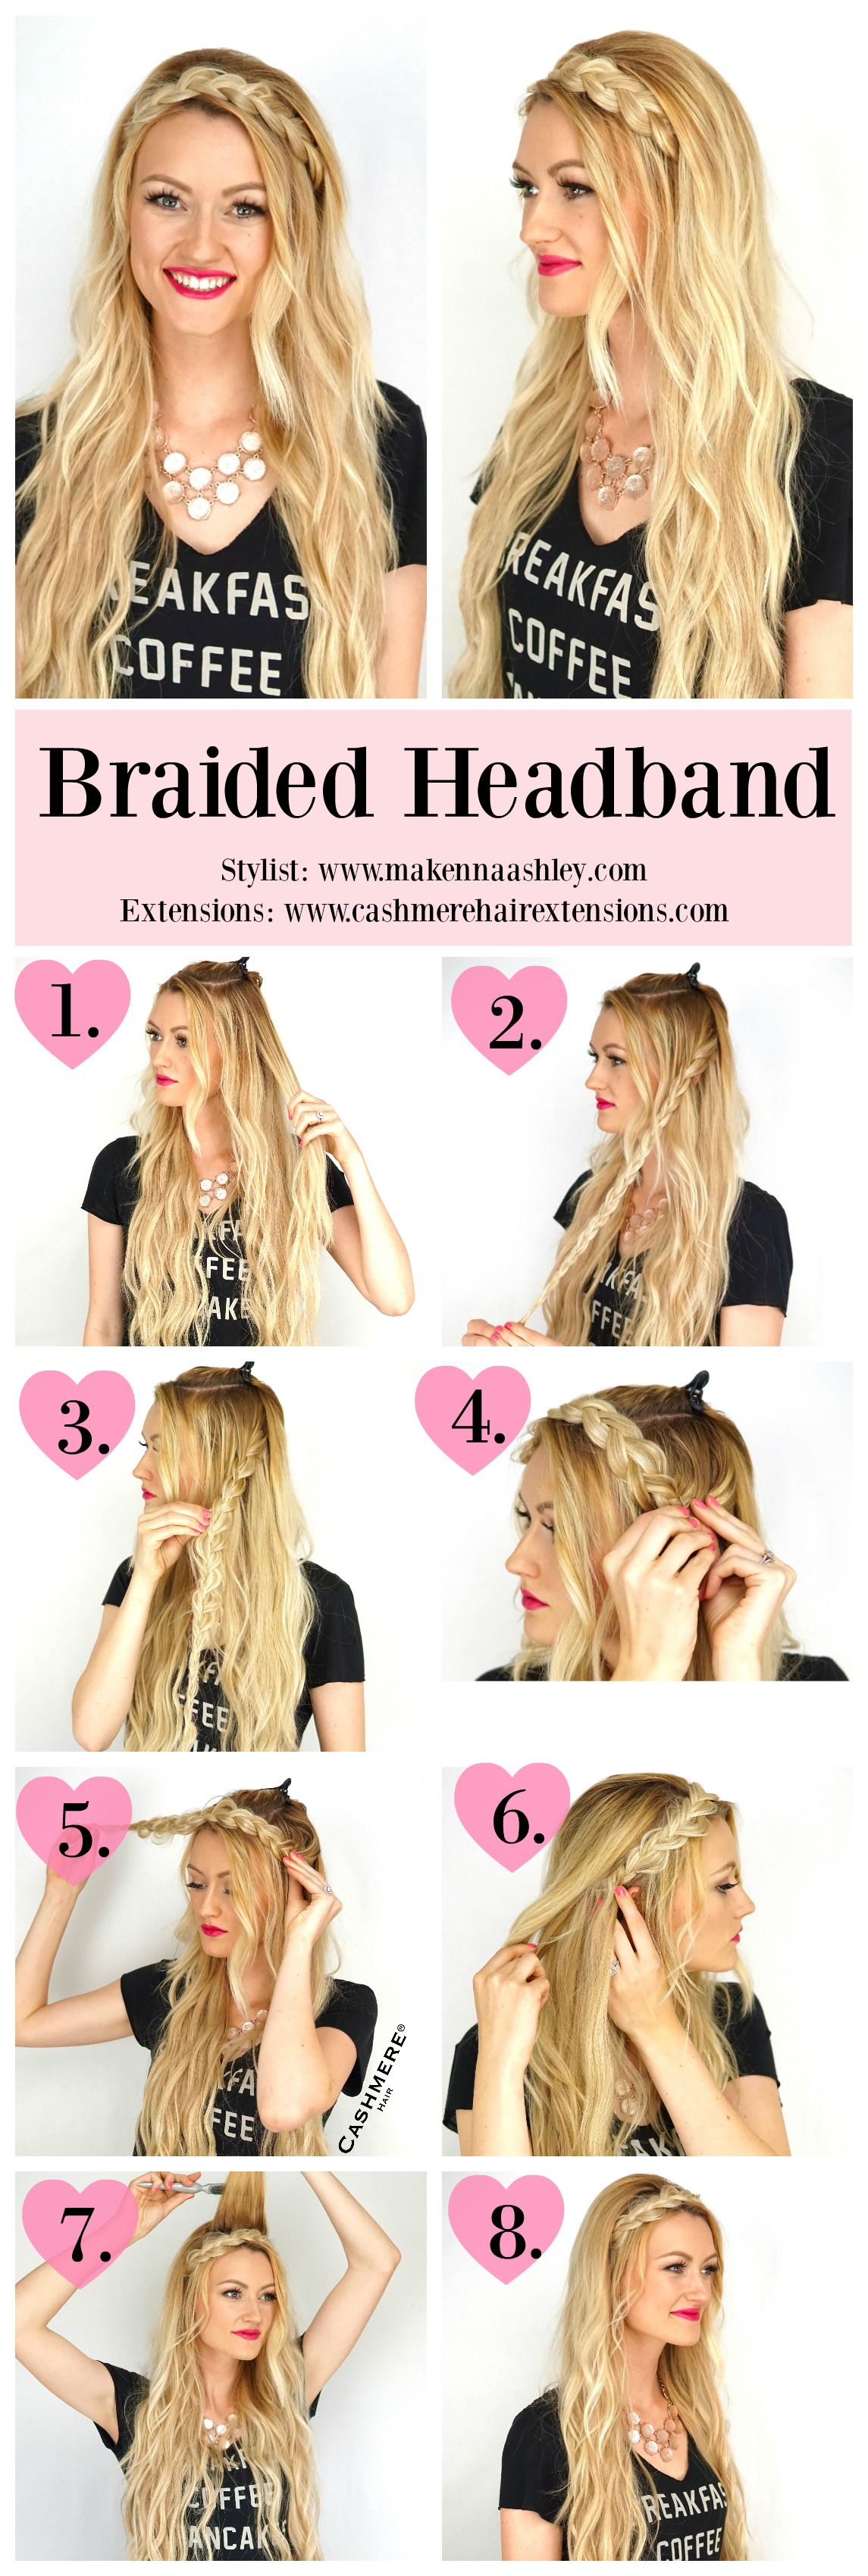 Wondrous Braided Headband Tutorial Cashmere Hair Clip In Extensions Hairstyles For Women Draintrainus